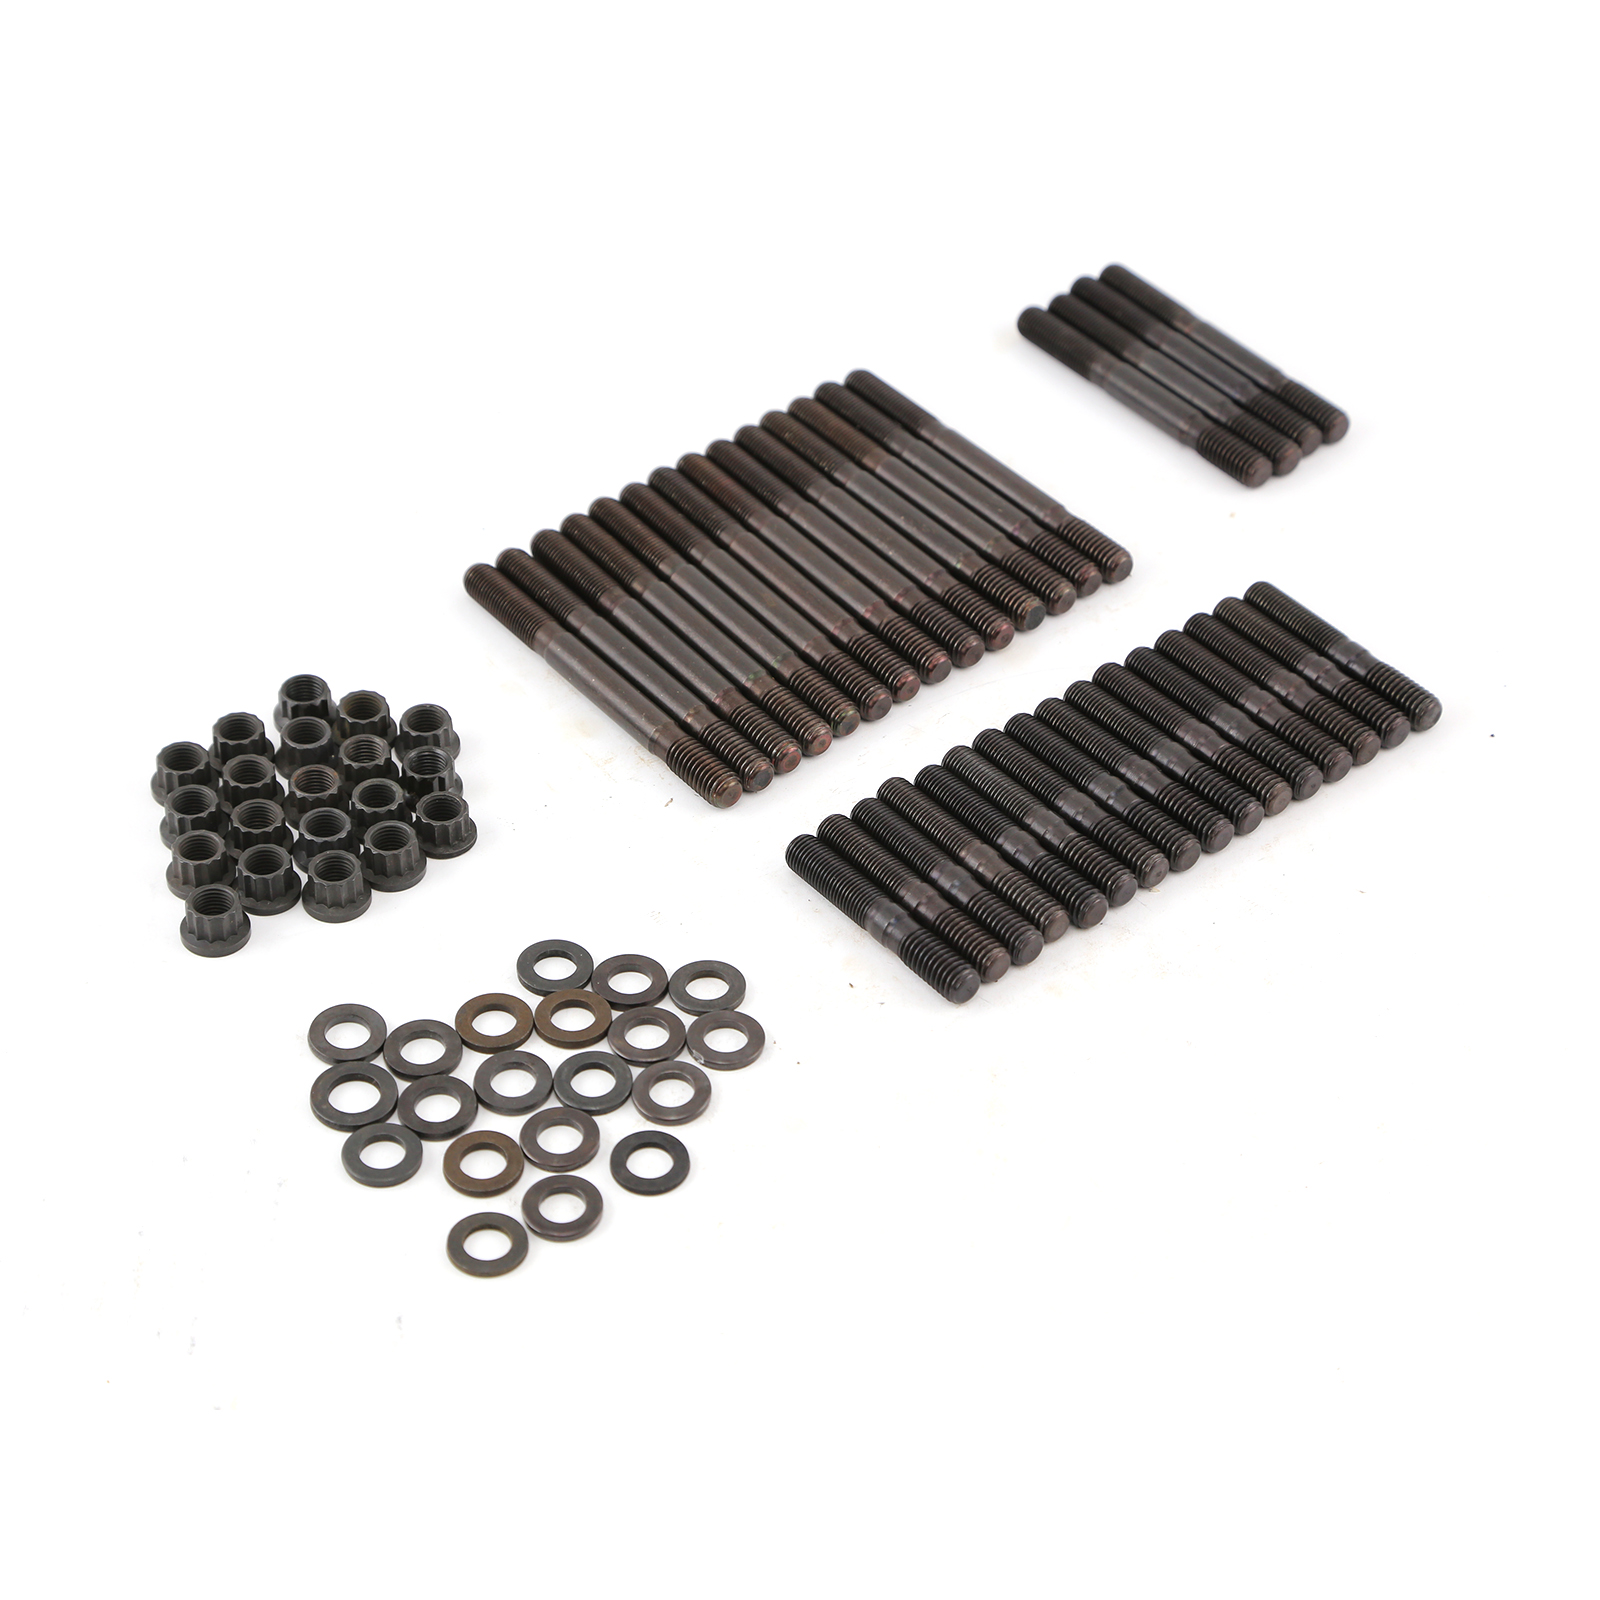 Chevy SBC 350 12 Point Head Stud Kit (Suits Std Or PCE